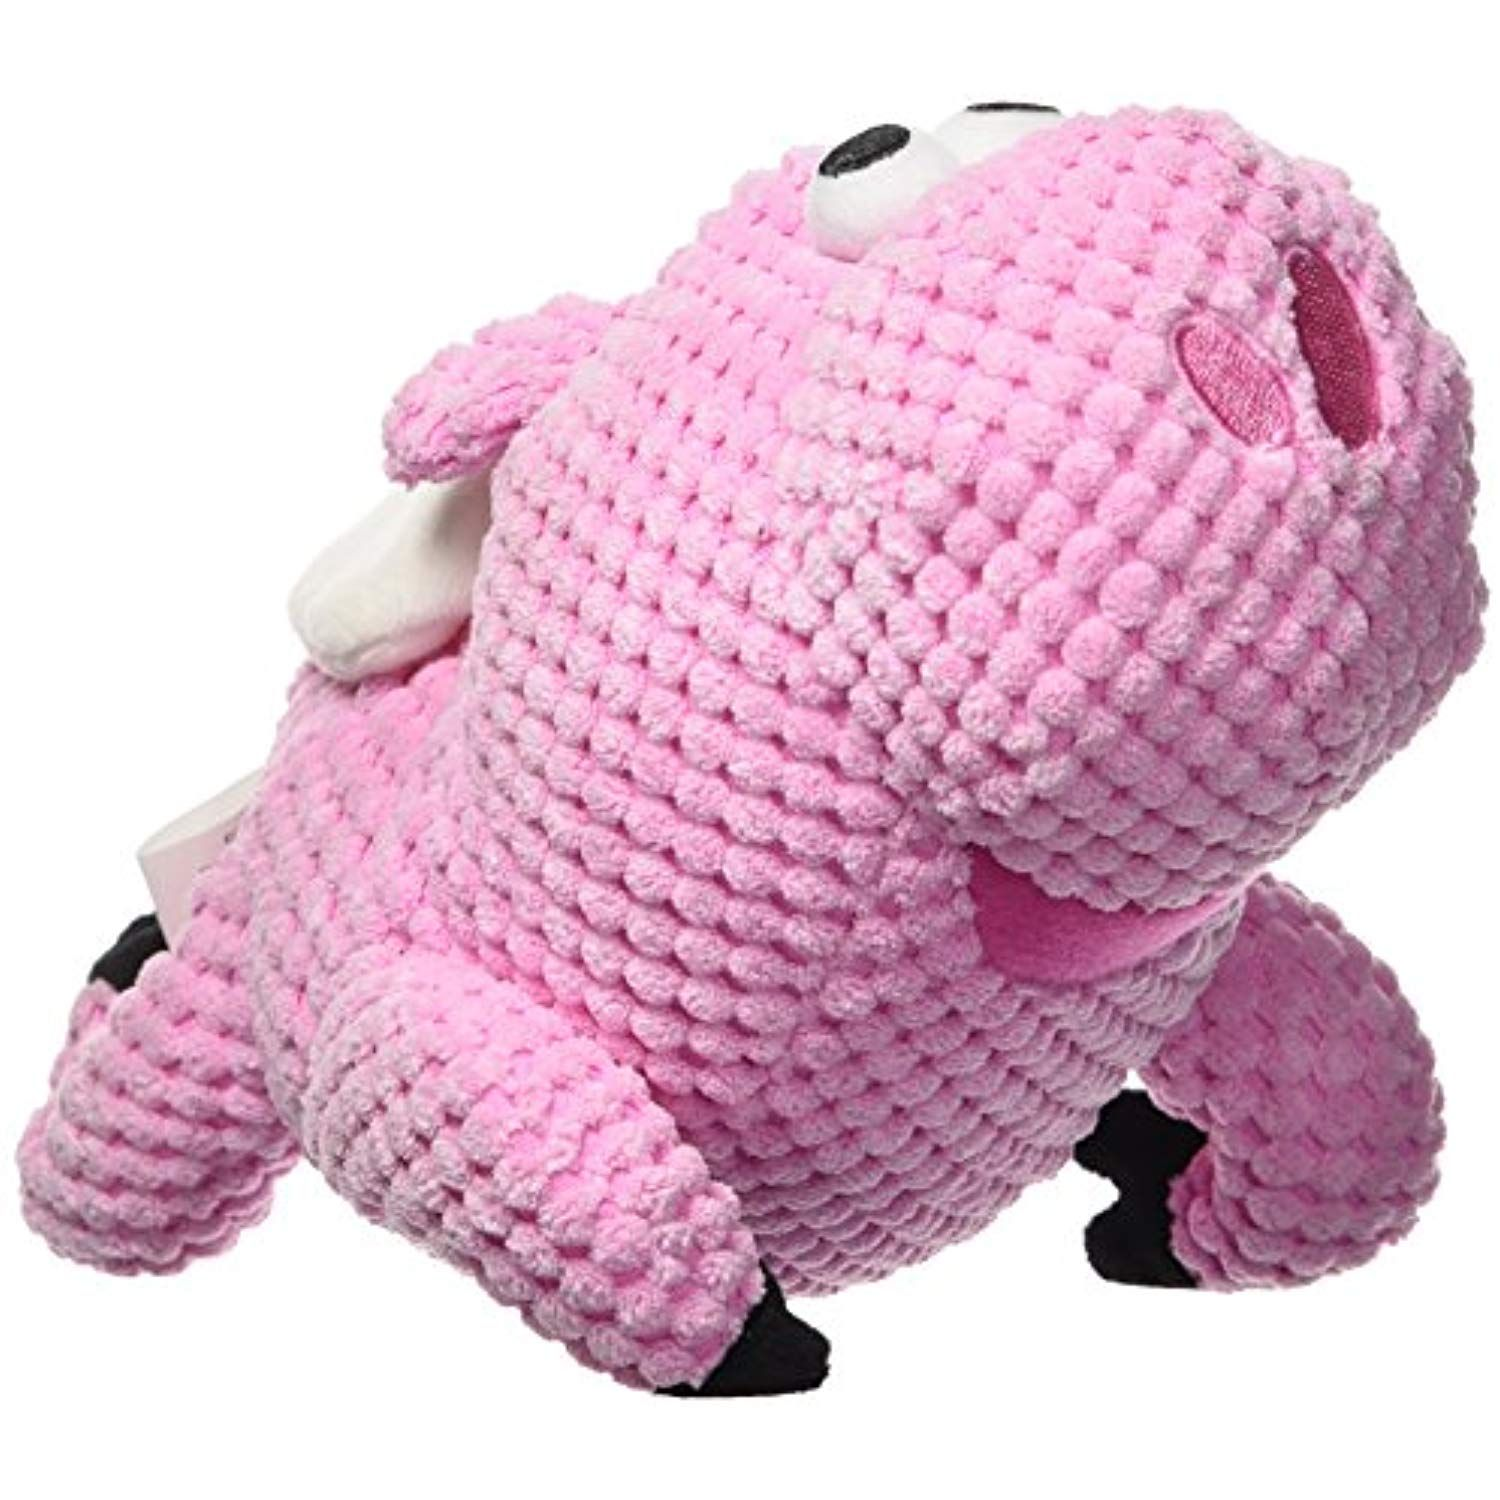 Godog Checkers Flying Pig With Chew Guard Technology Tough Plush